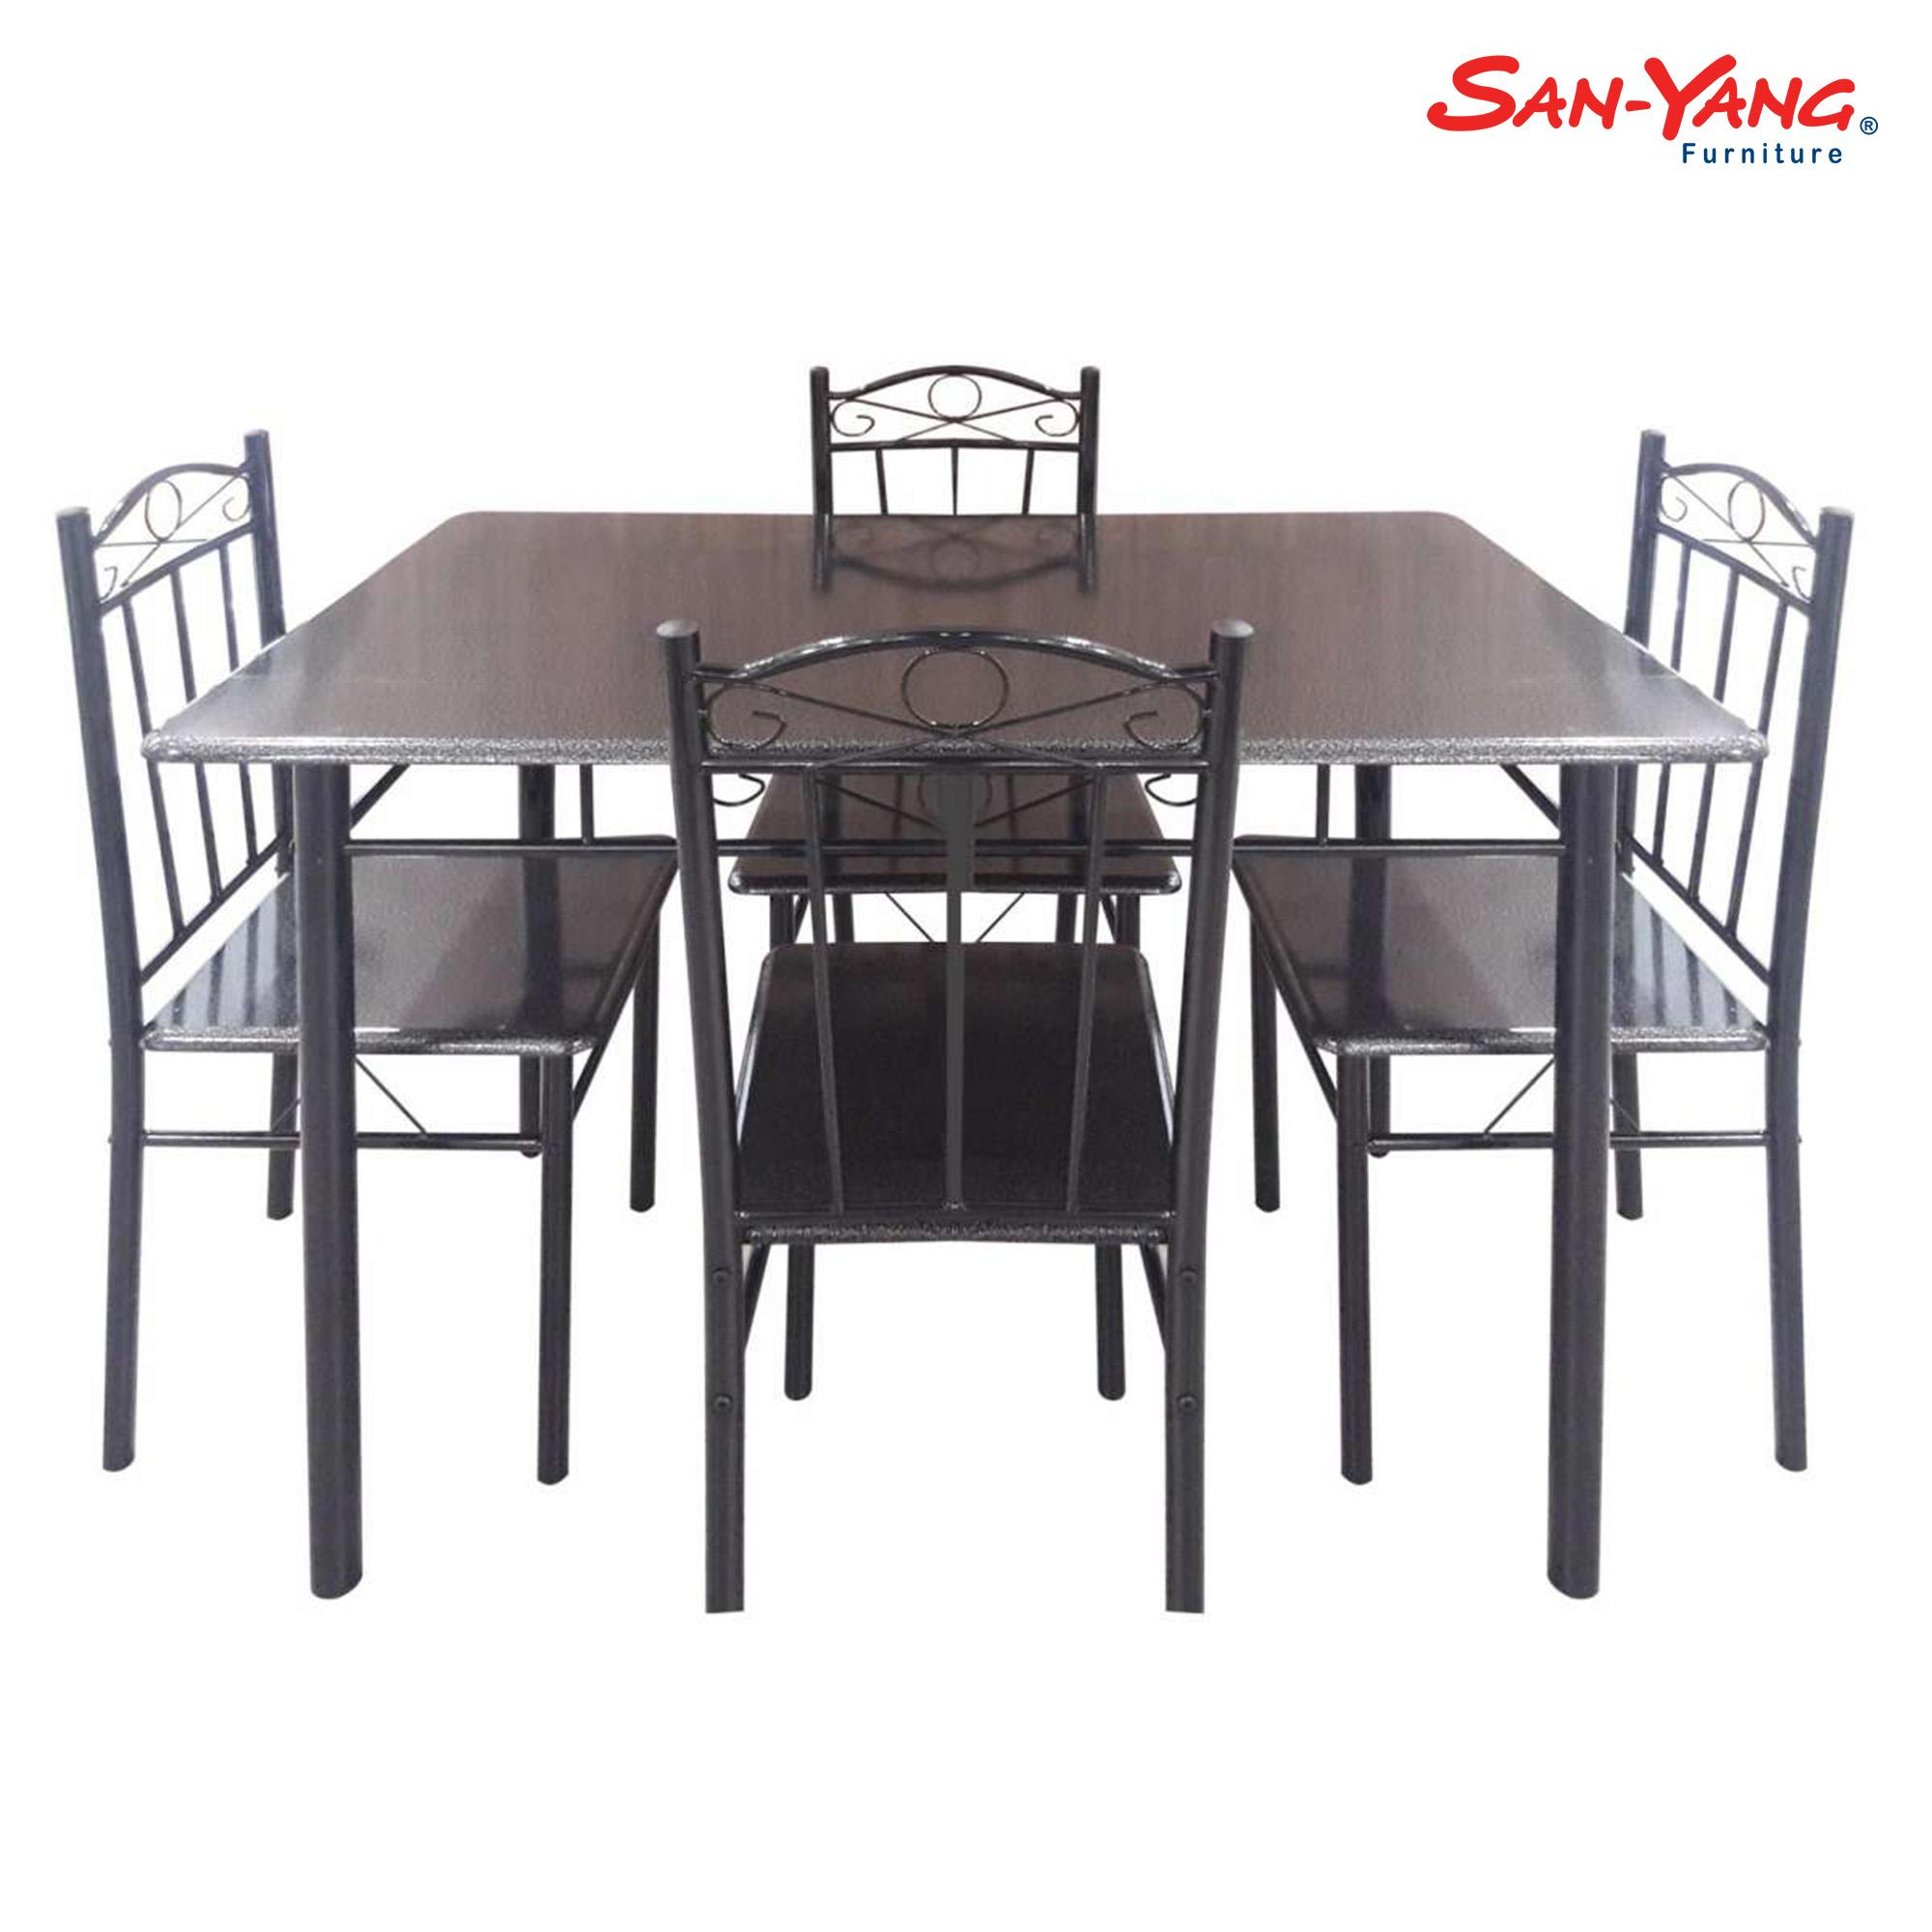 632f620d16b4 Kitchen Furniture for sale - Dining Furniture prices, brands ...